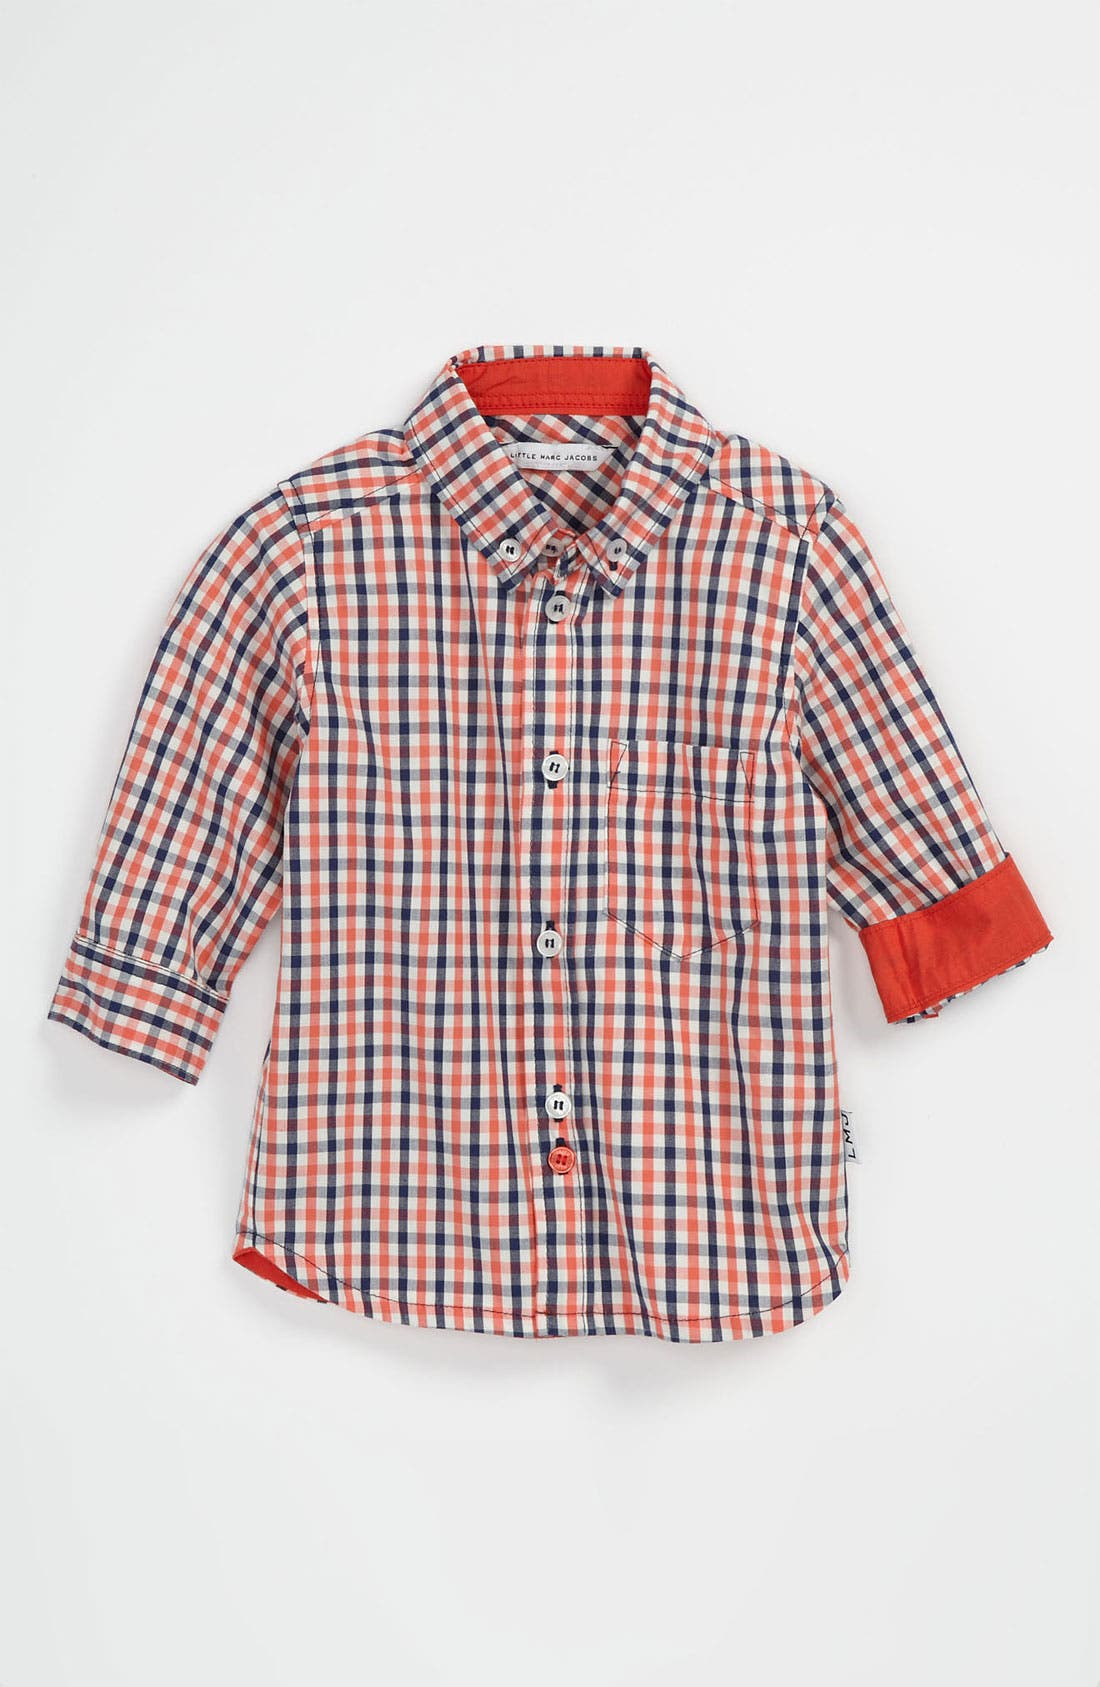 Main Image - LITTLE MARC JACOBS Woven Shirt (Baby)